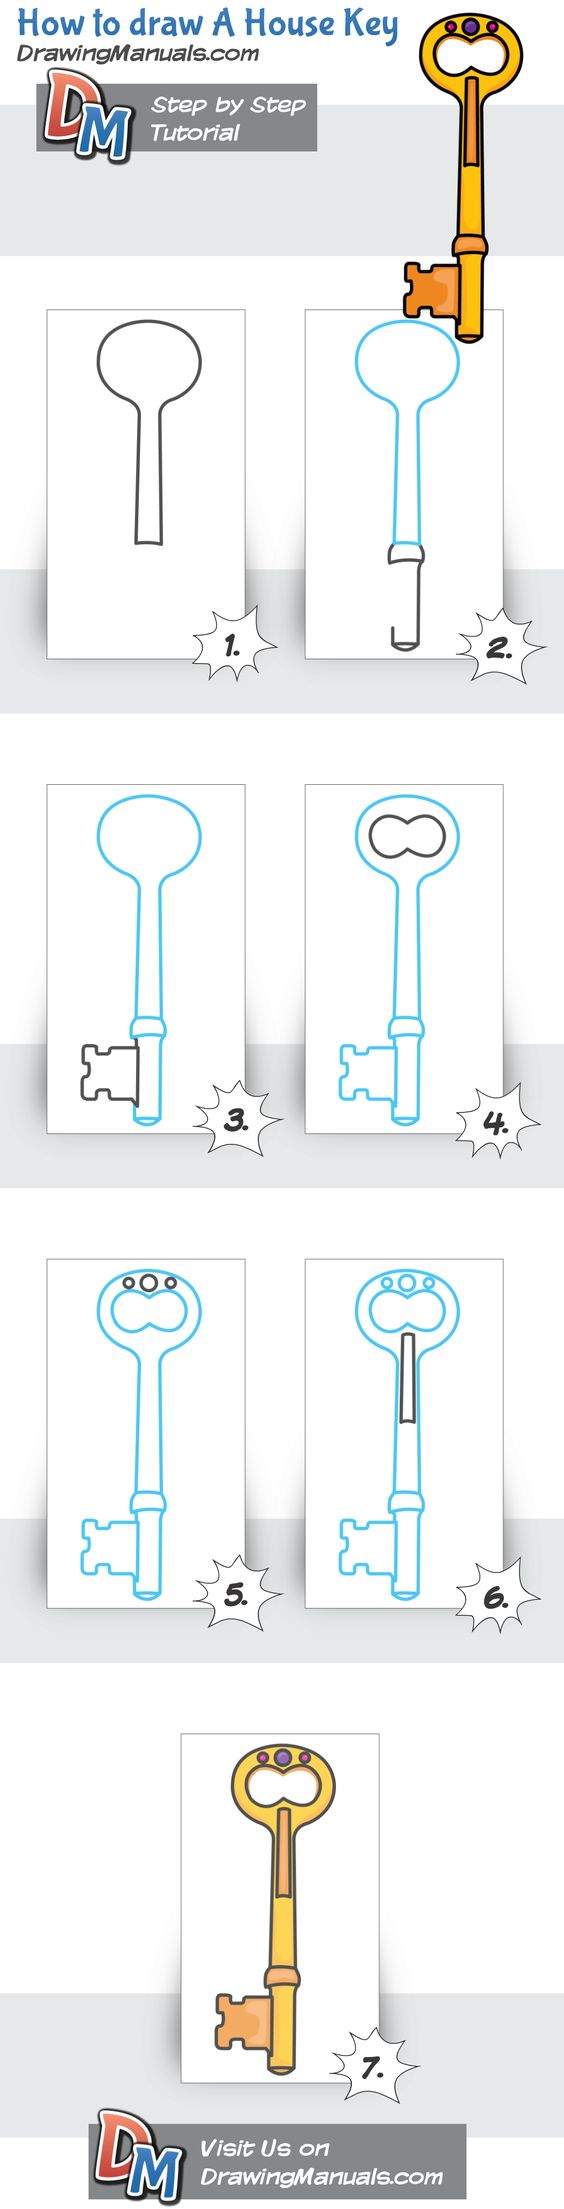 How to draw A House Key